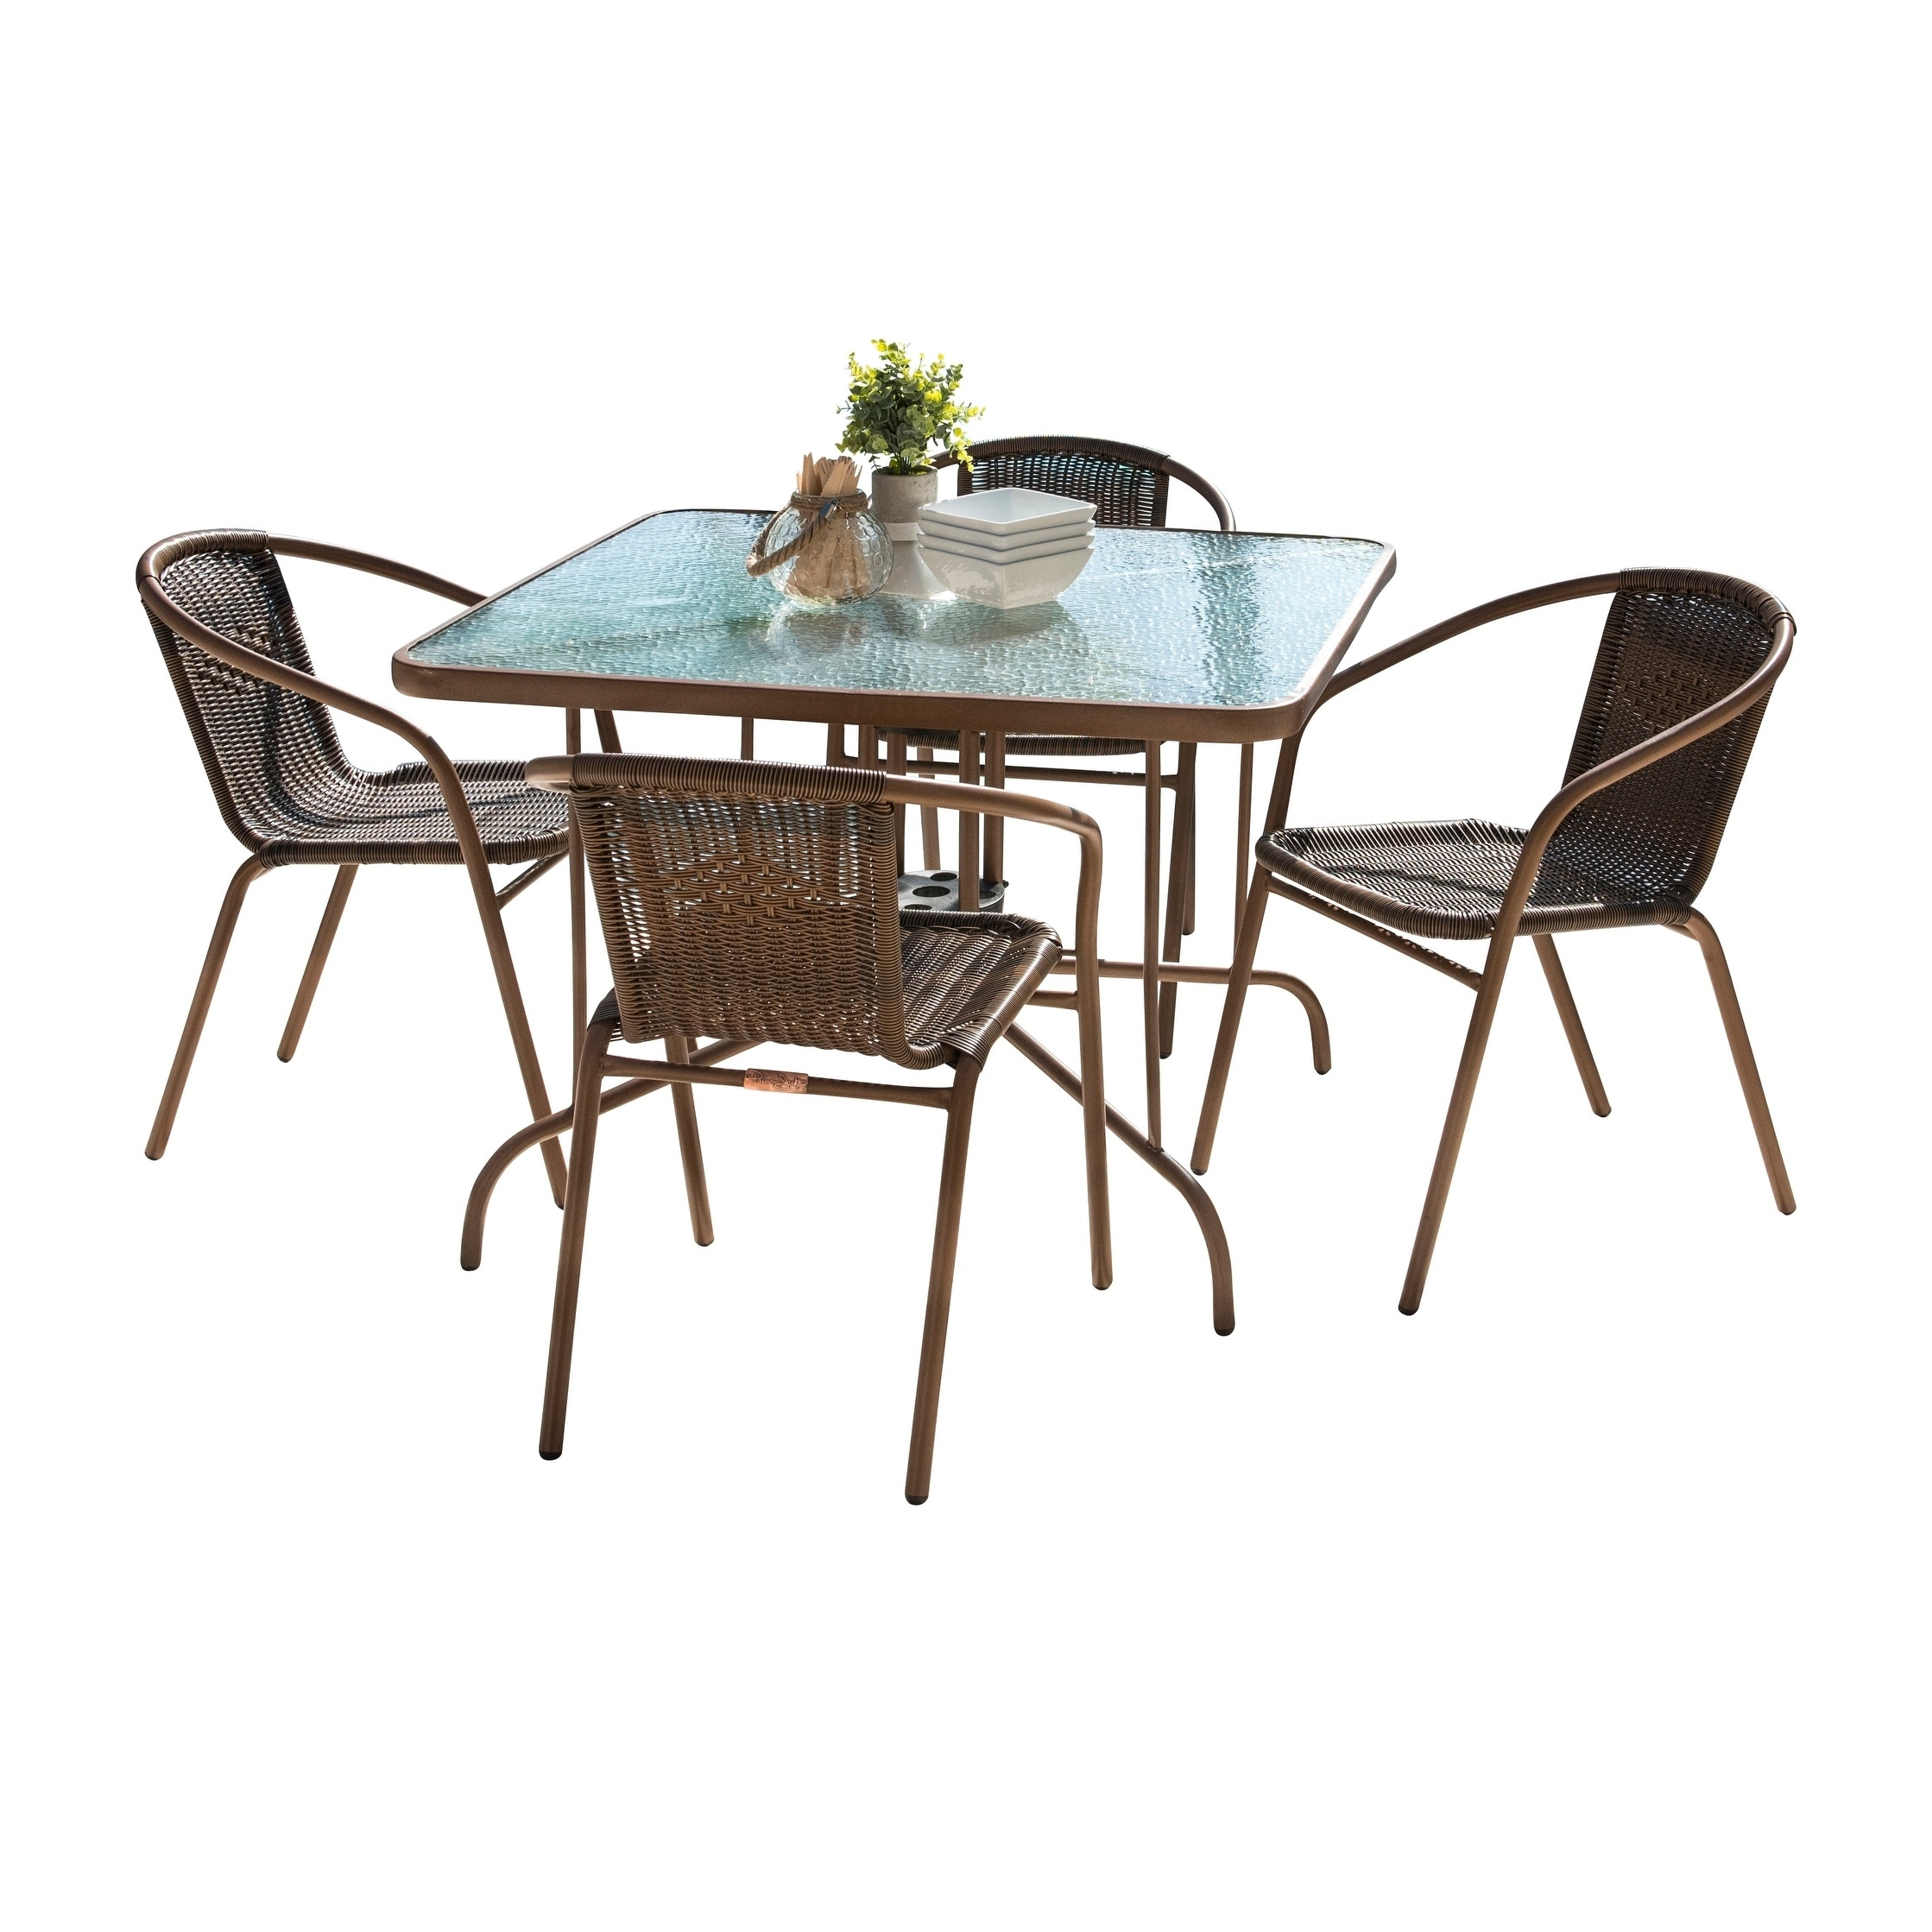 Details About Panama Jack Cafe 5 PC Woven Dining Set Brown